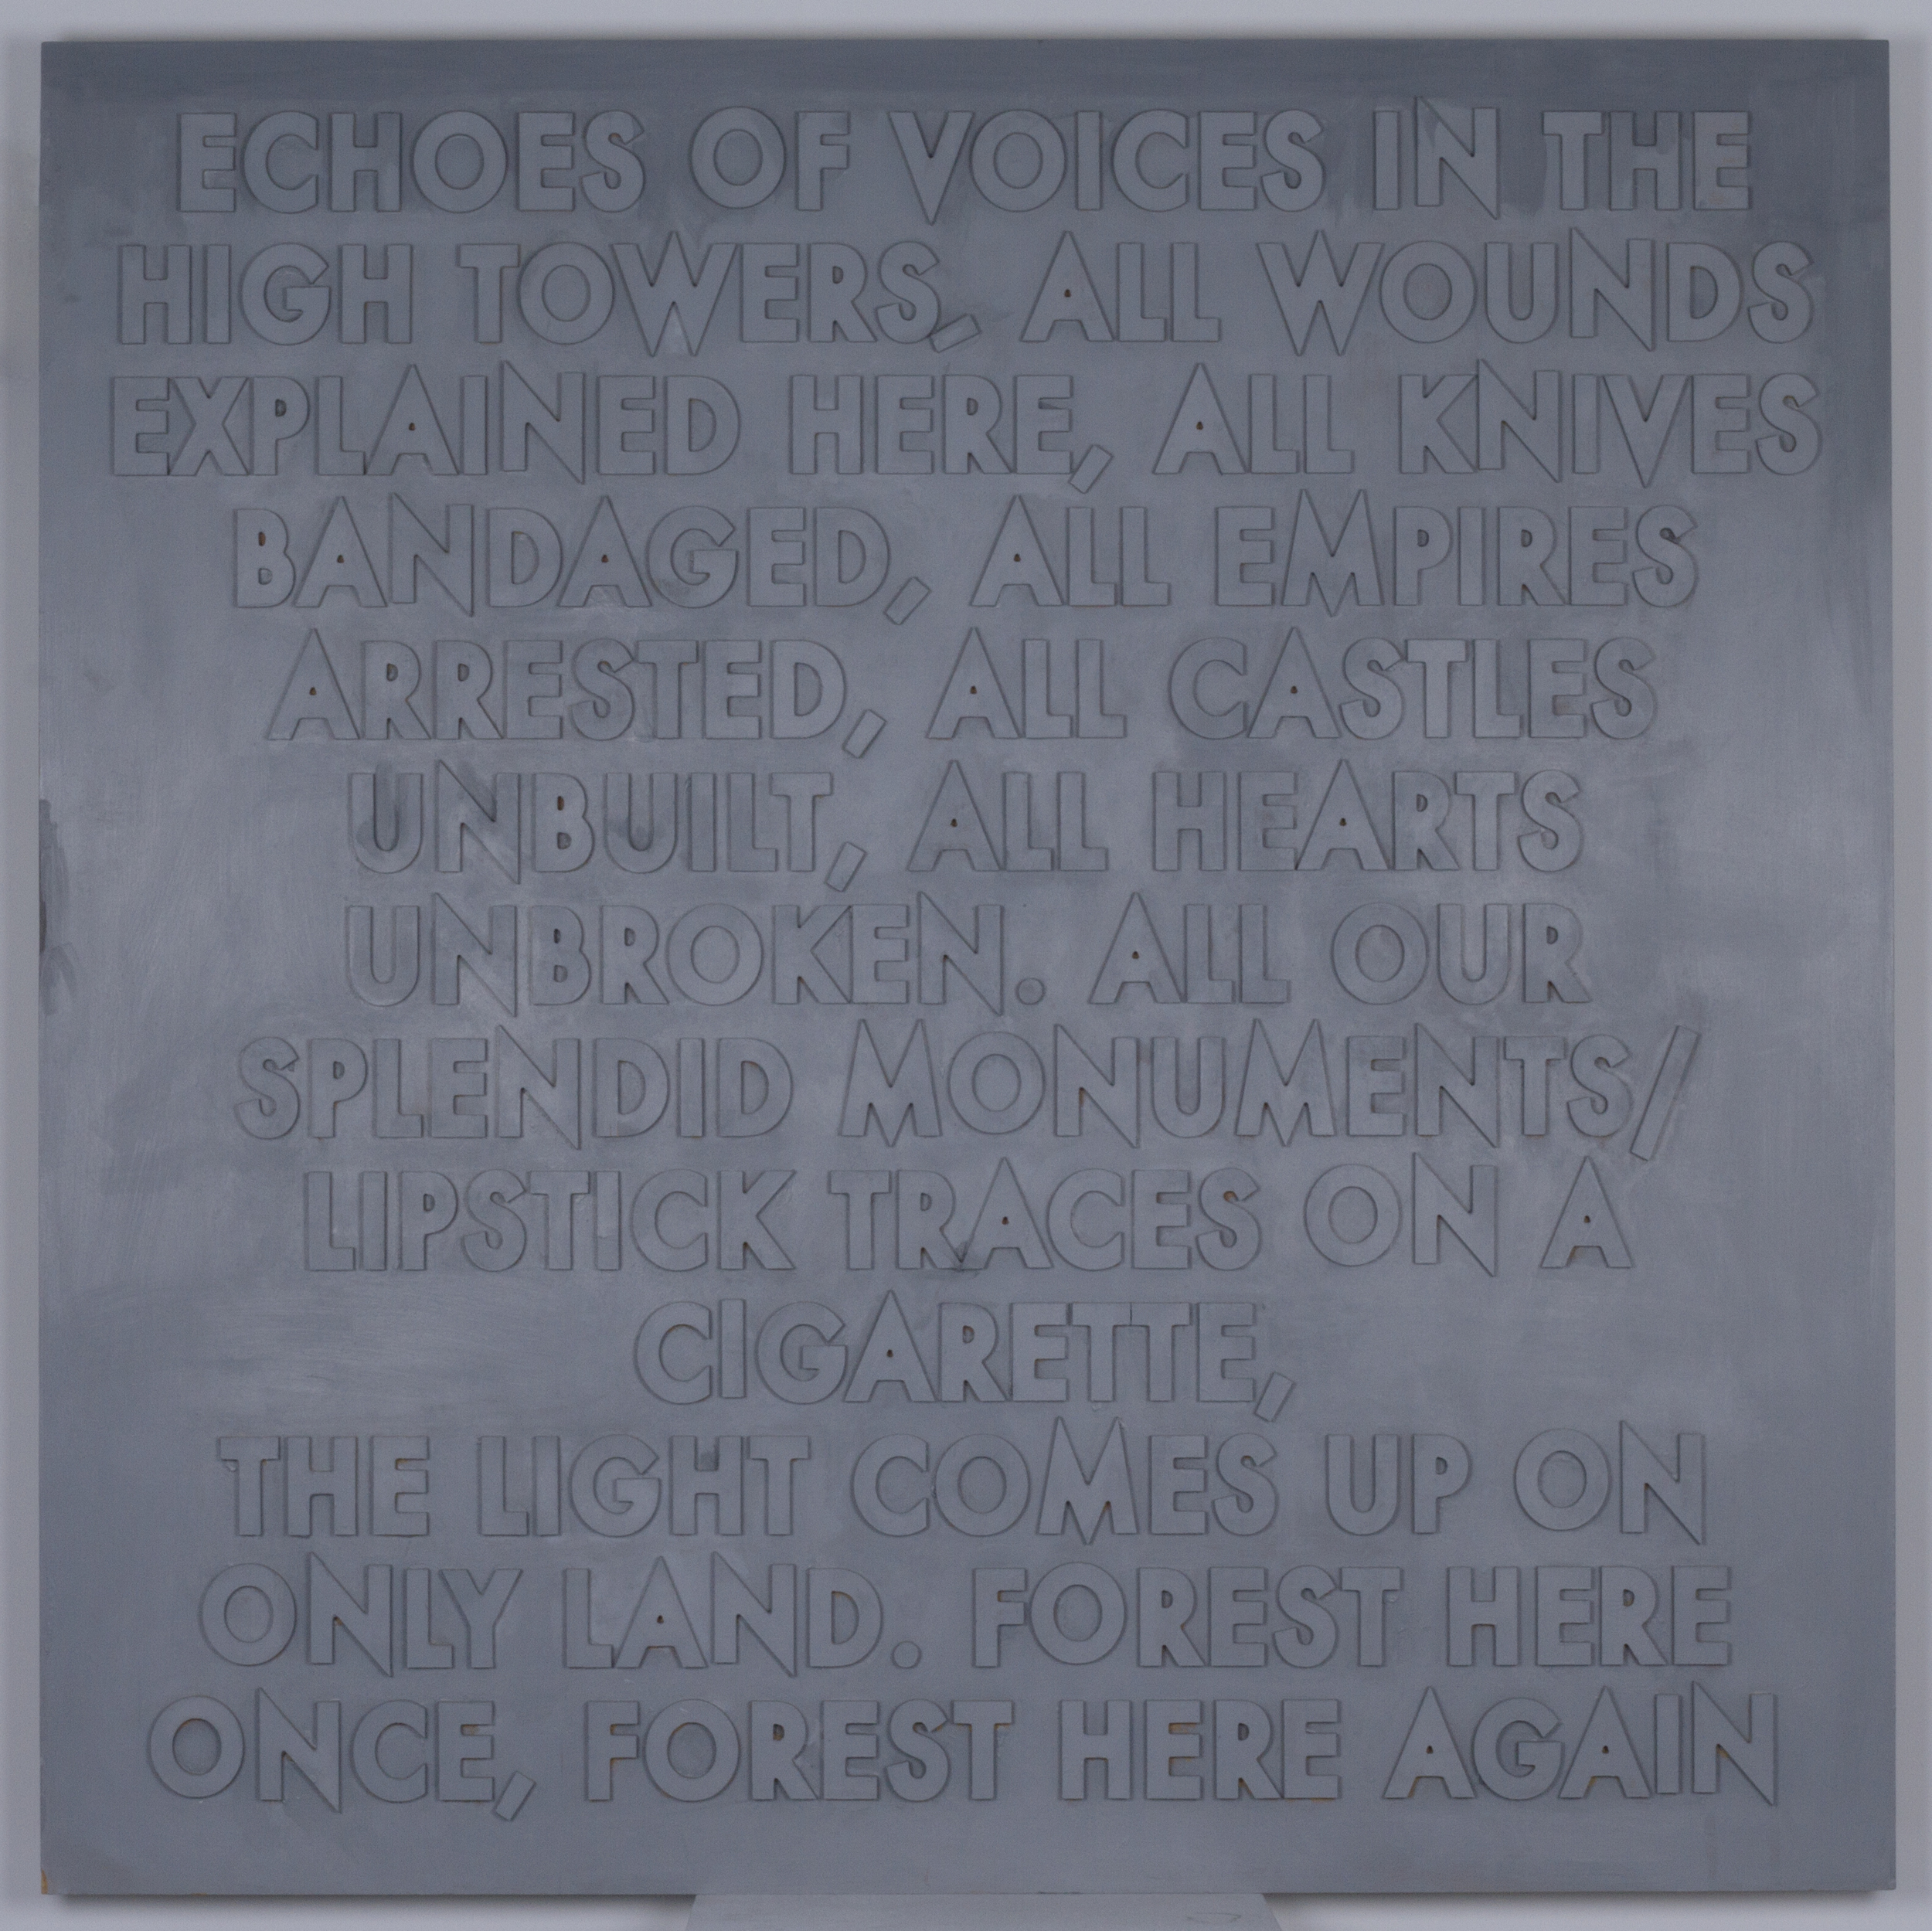 MONTGOMERY_ROBERT_ECHOES_OF_VOICES_IN_THE_HIGH_TOWER_(WOODCUT).jpg